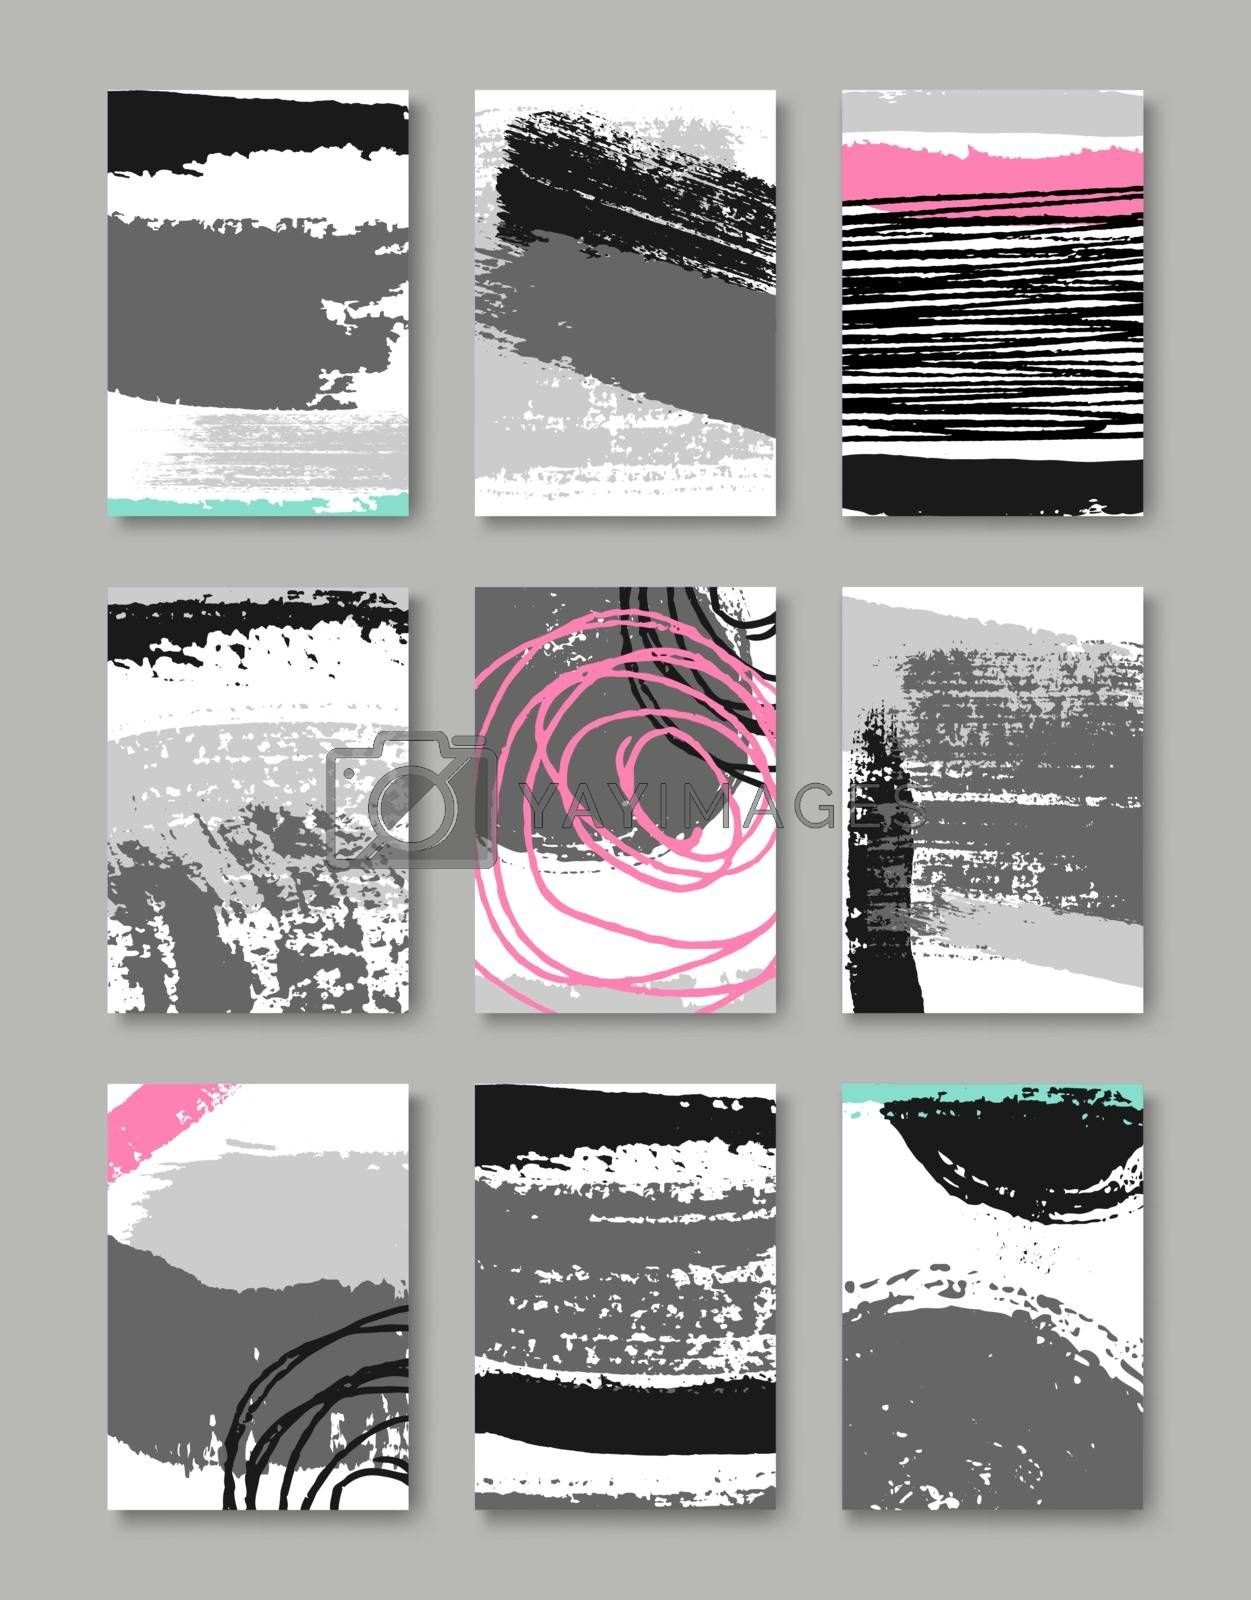 A set of hand drawn style greeting card templates in black, white and gray with some bright pink elements. Abstract brush strokes and ink doodles pattern designs with copy space. EPS 10 file, gradient mesh used.